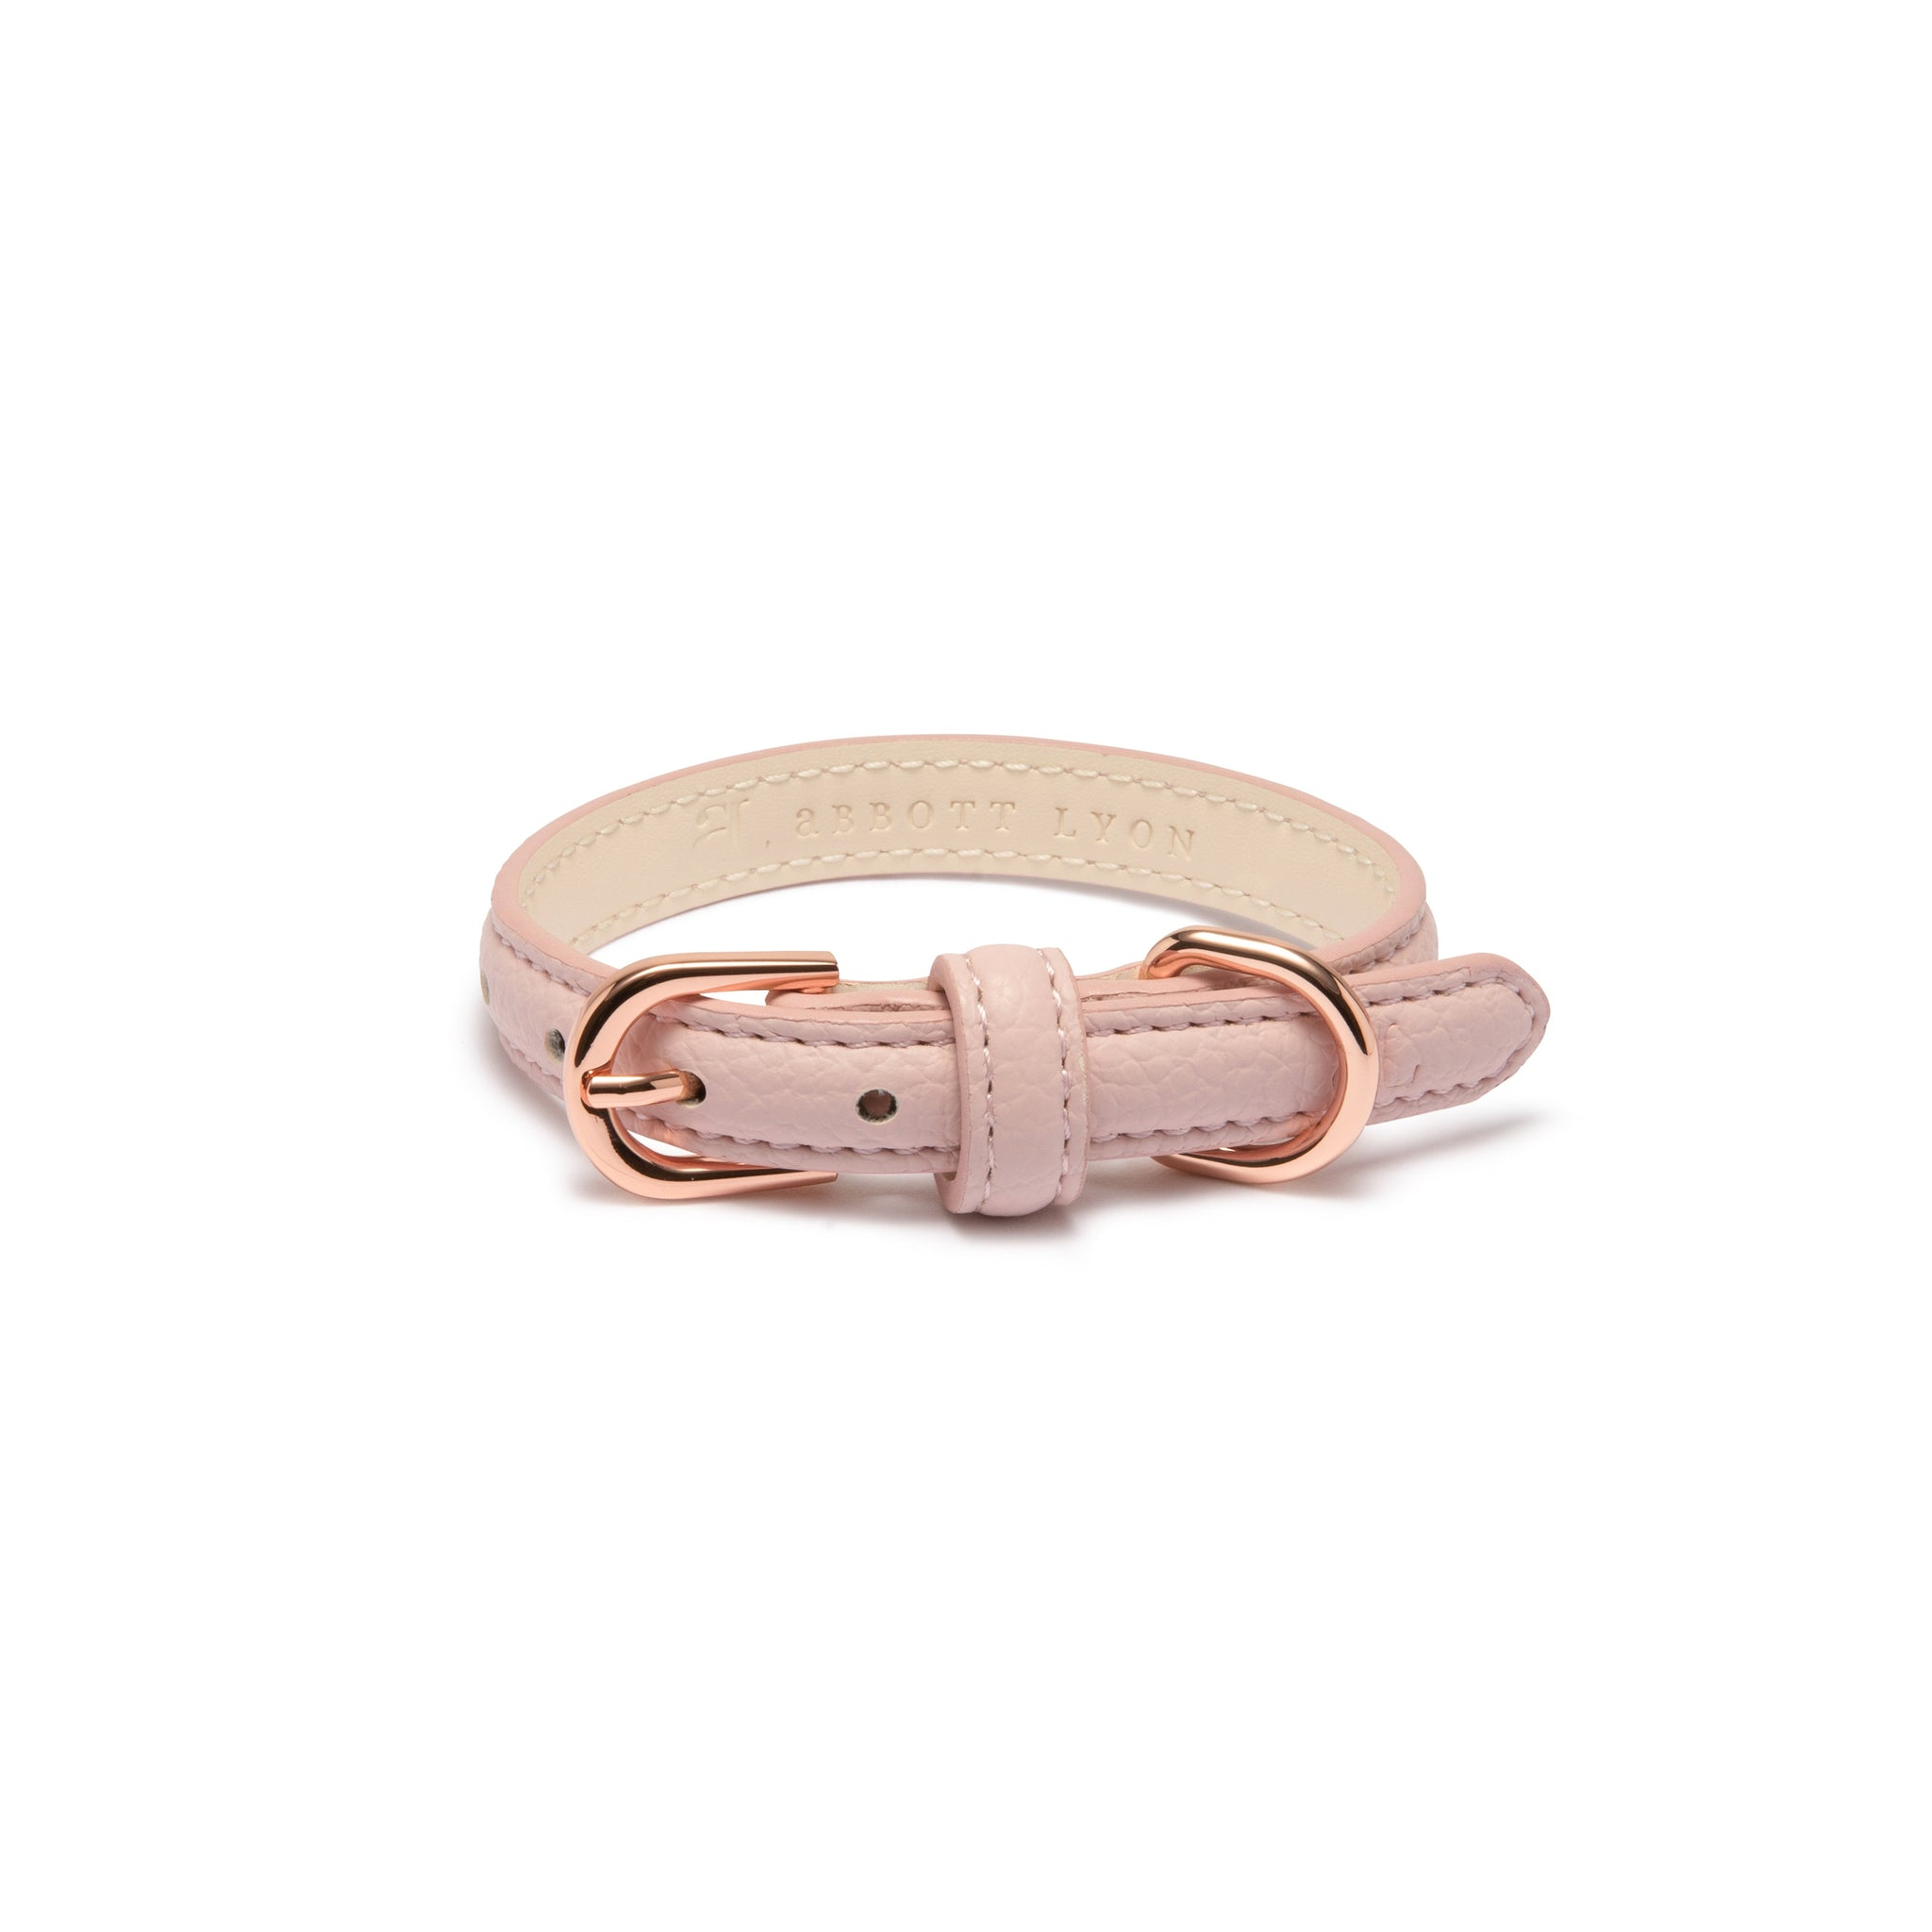 Blush Dog Collar (Rose Gold)